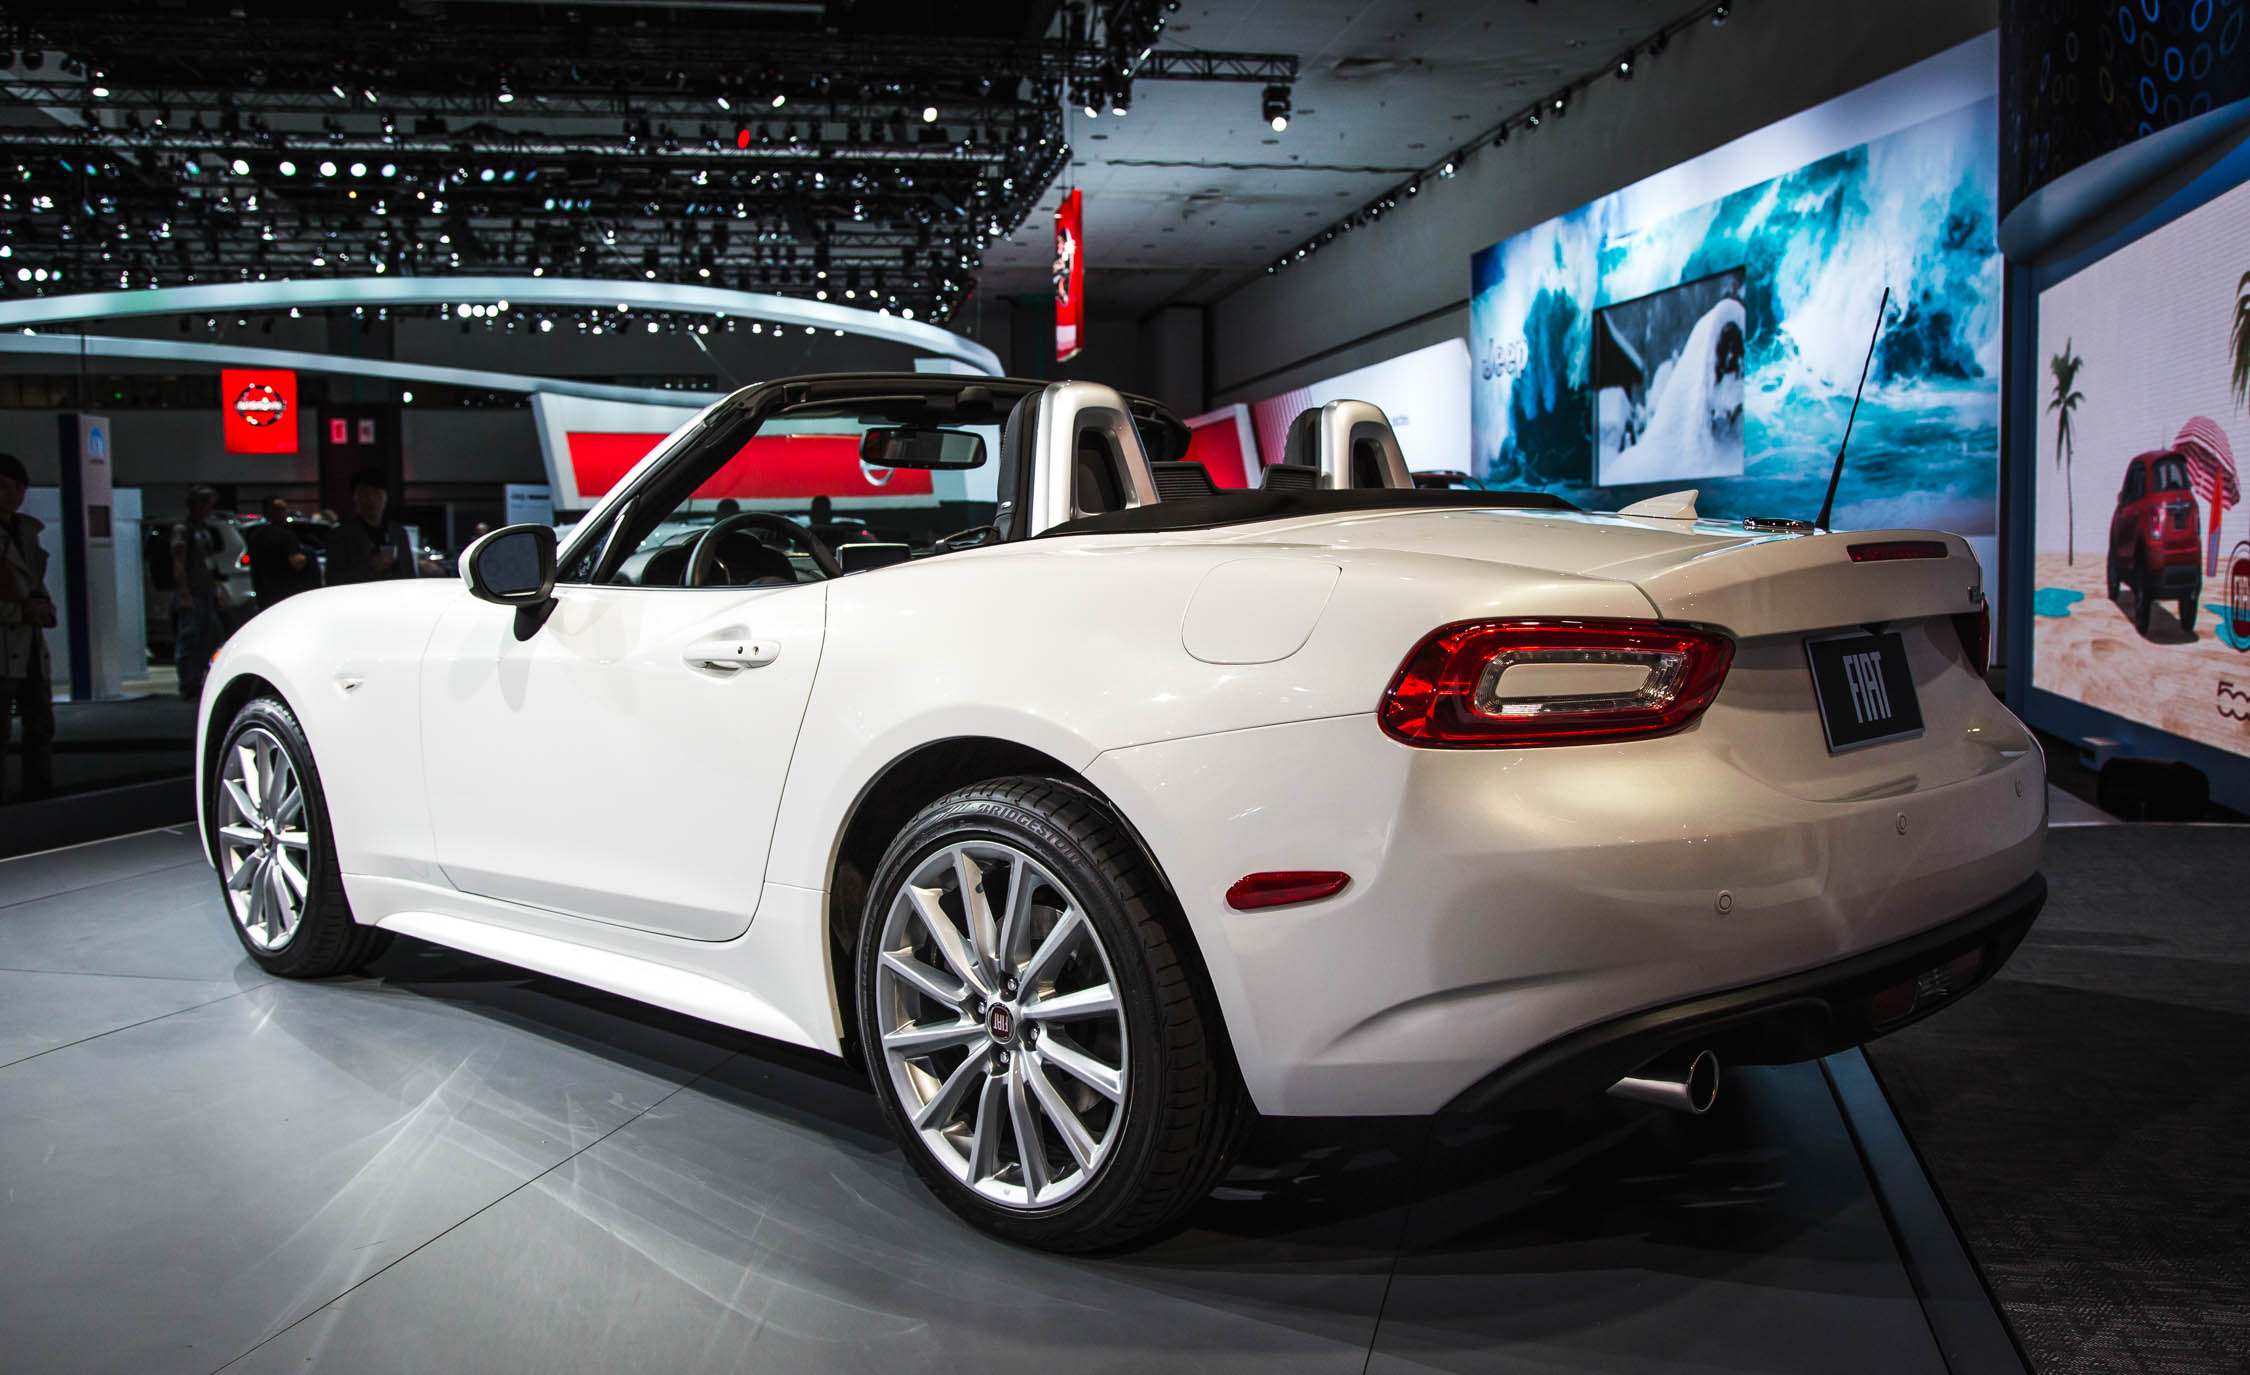 2017 Fiat 124 Spider White Preview (View 14 of 23)